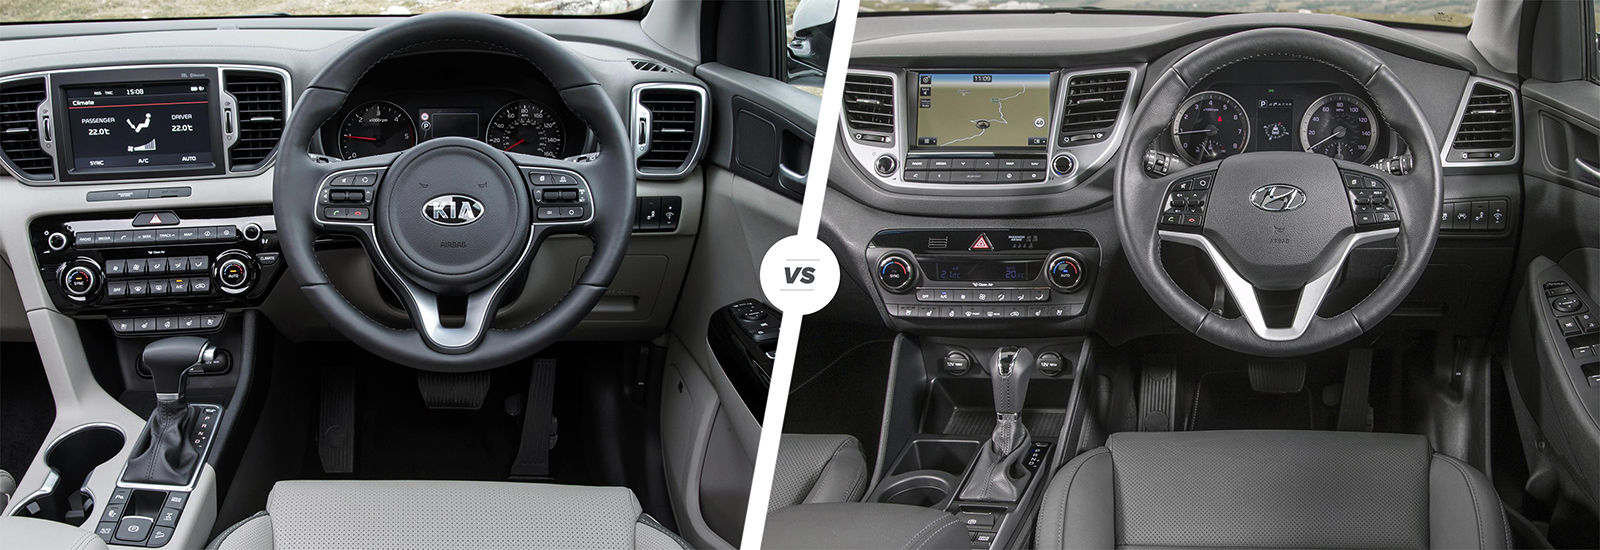 Perfect Kia Sportage Vs Hyundai Tucson U2013 Interior